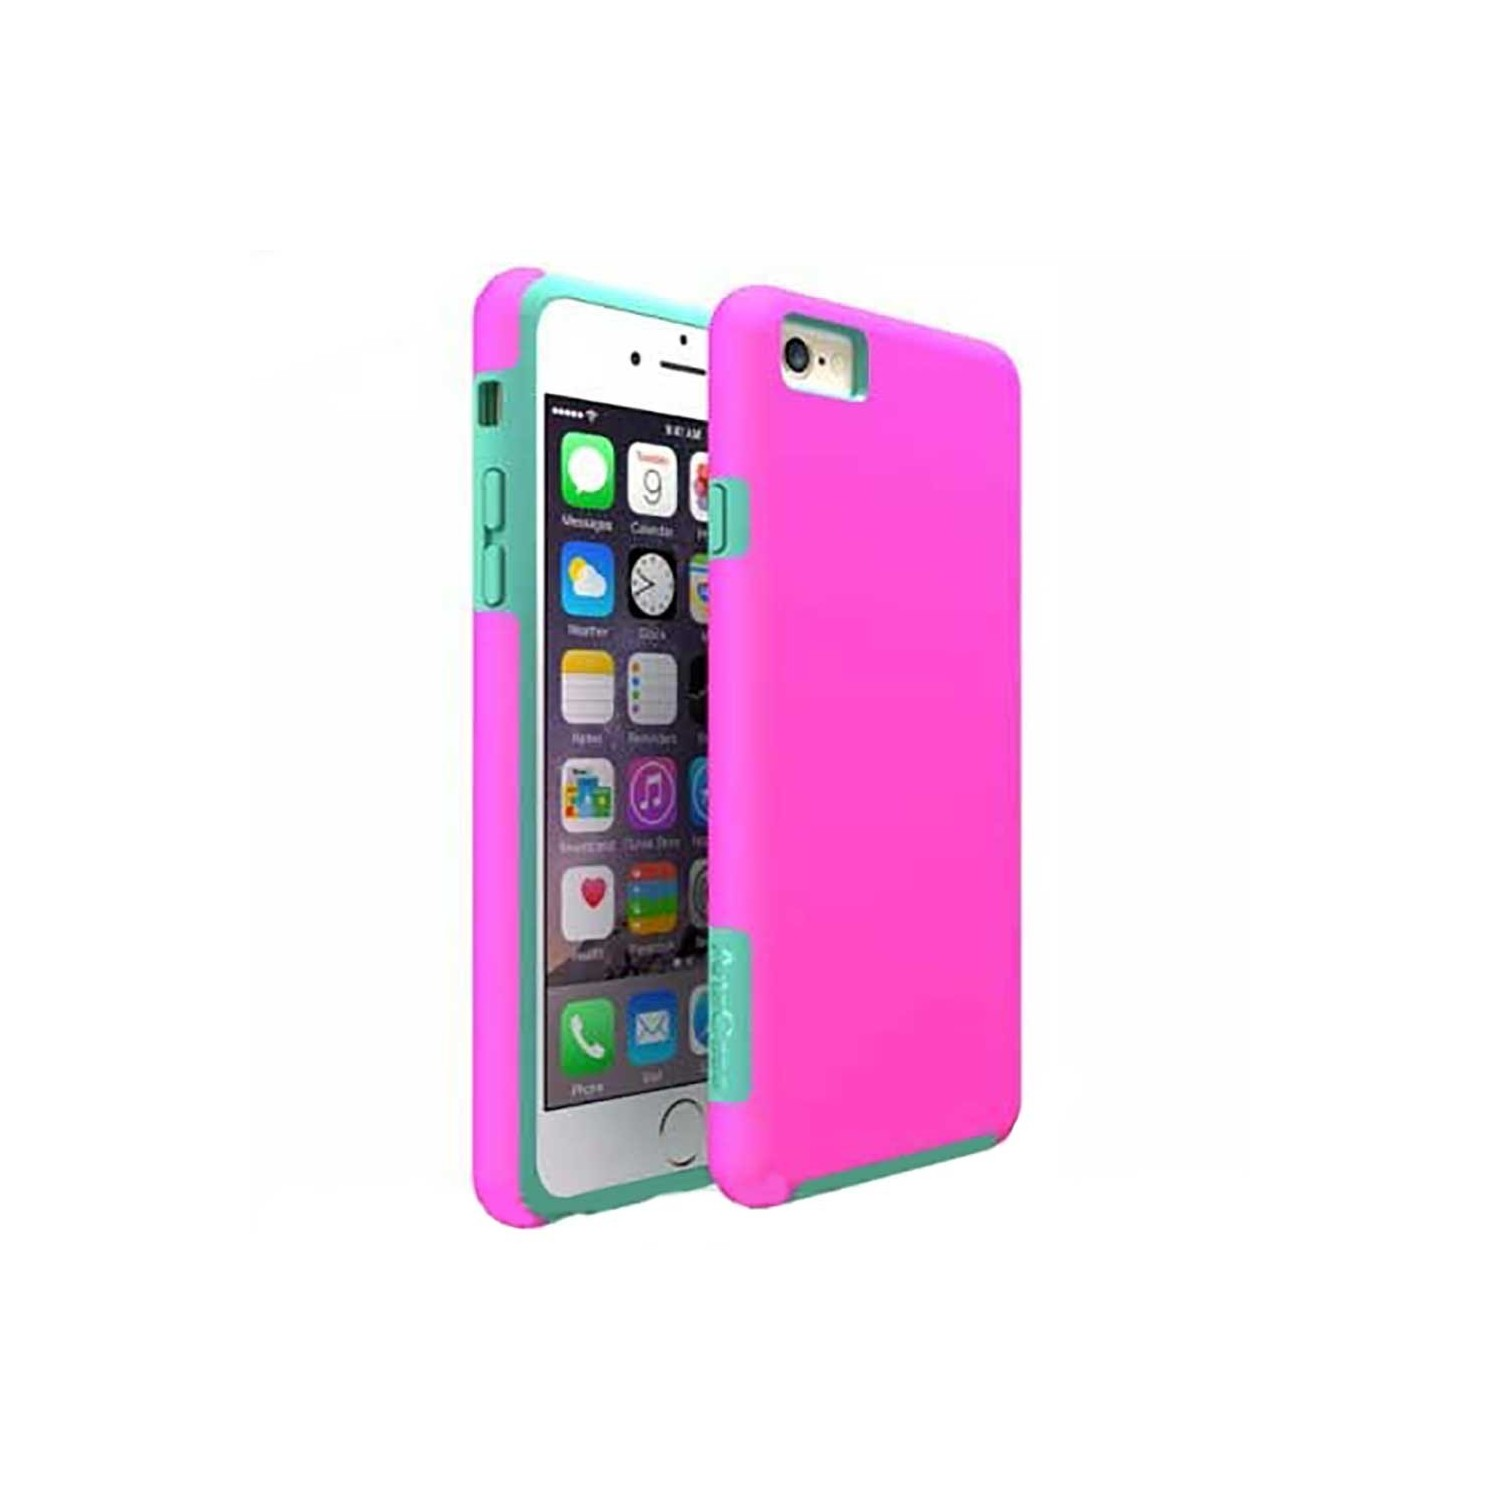 Case -  ArtsCase StrongFit for iPhone 6/6s Pink Aqua